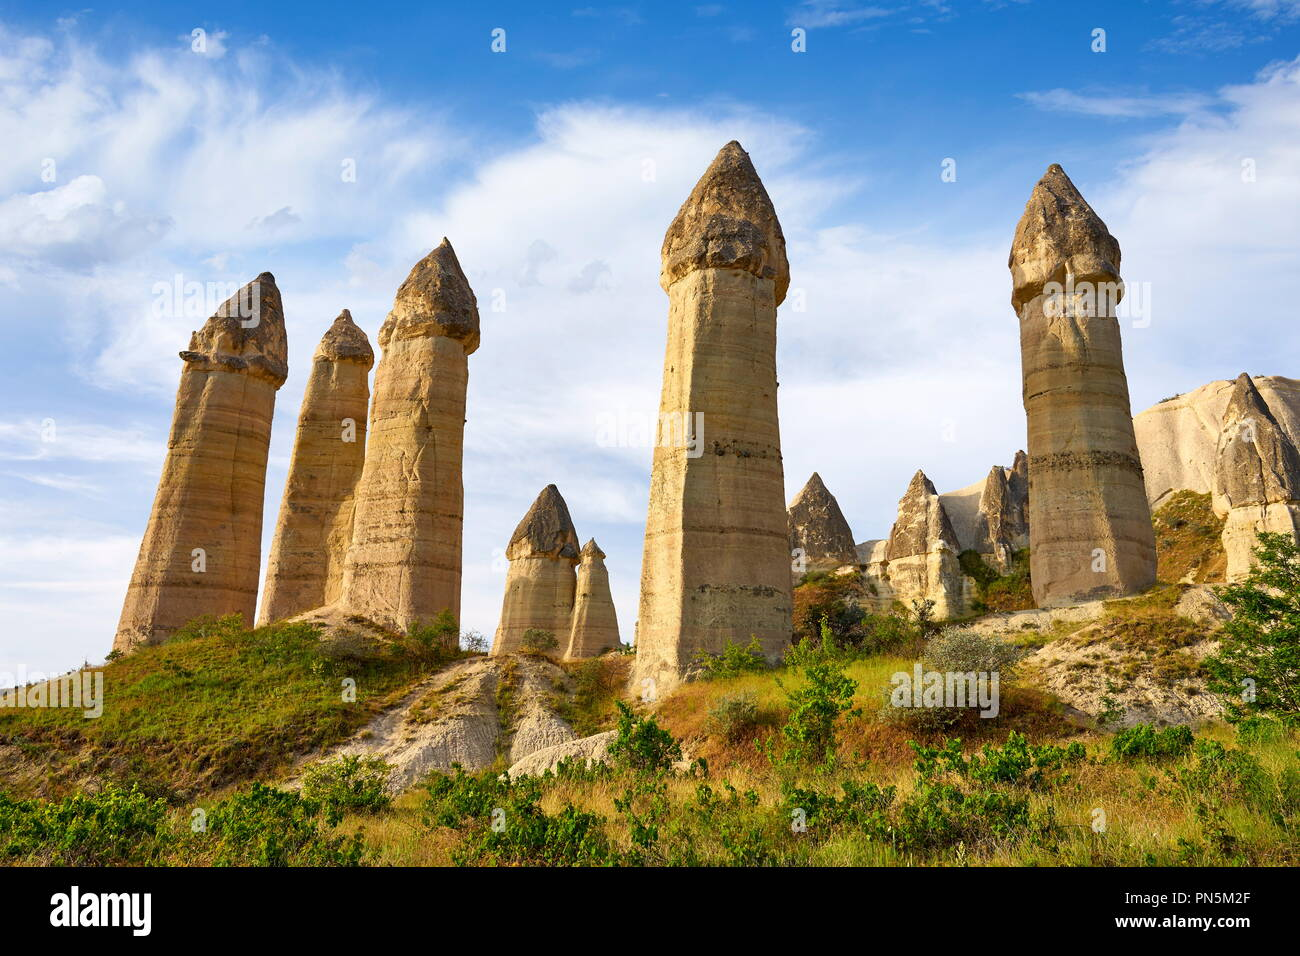 Fairy Chimneys rock formation in Love Valley, Cappadocia,  Goreme National Park, Anatolia, Turkey - Stock Image